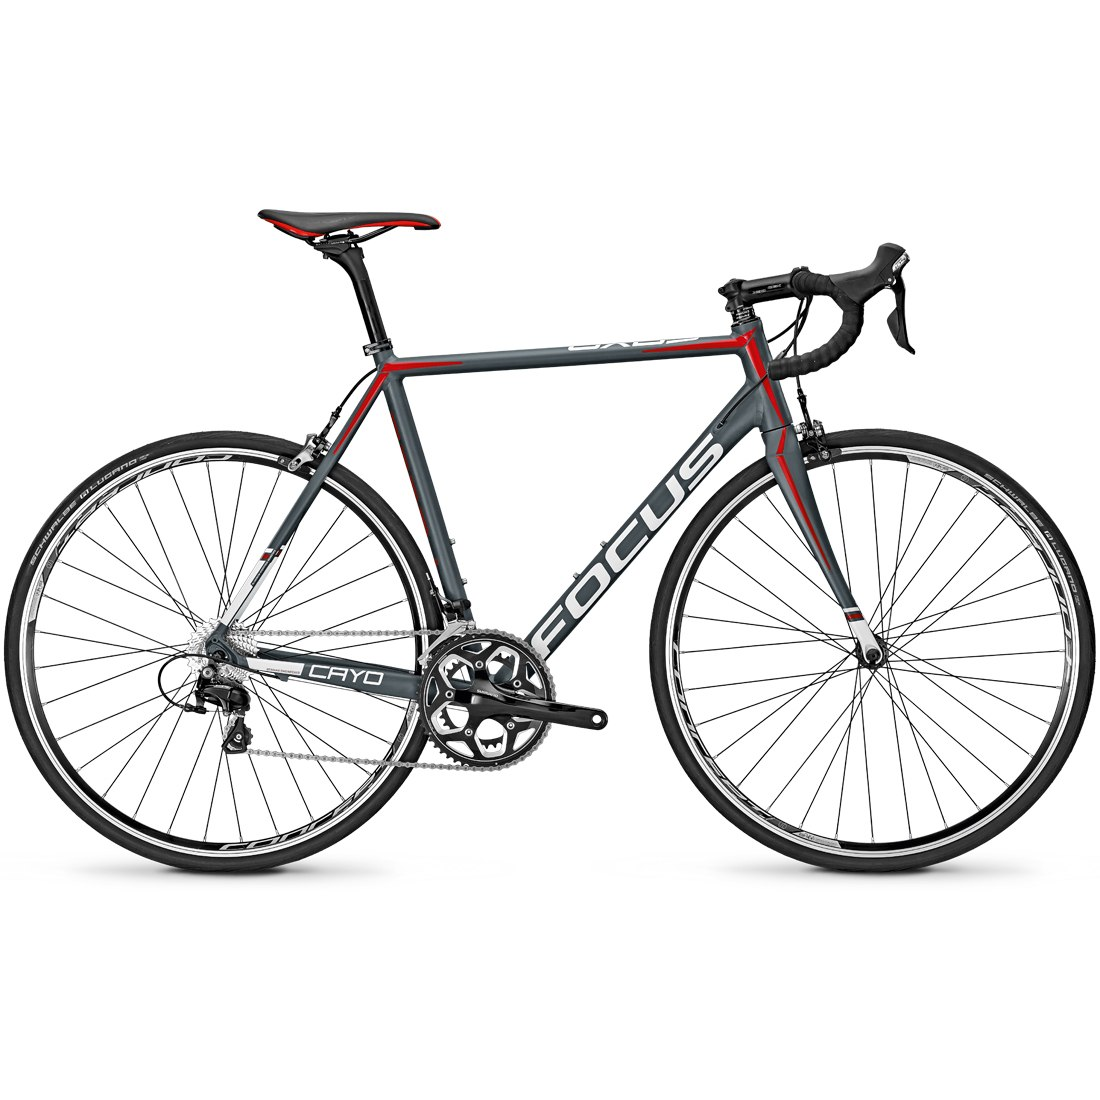 Focus Cayo AL 105 11 Road Bike